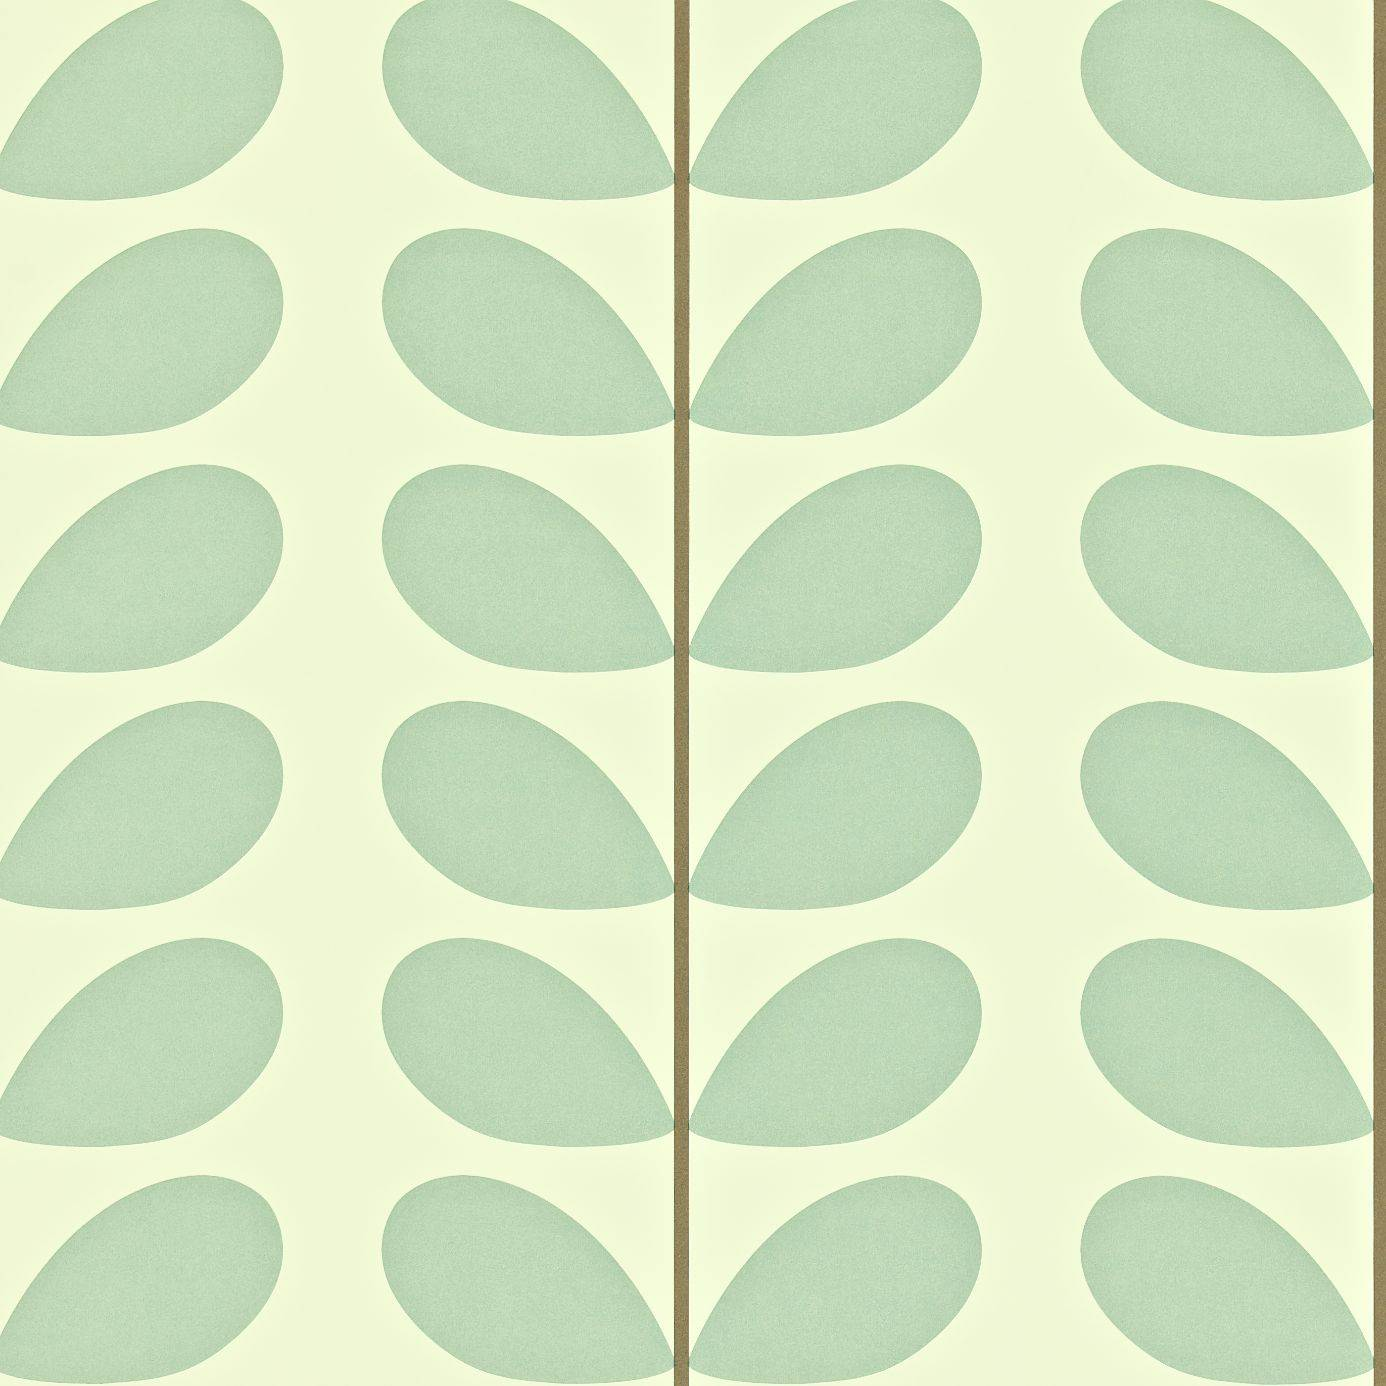 classic stem wallpaper bird 39 s egg 110390 harlequin orla kiely wallpapers collection. Black Bedroom Furniture Sets. Home Design Ideas